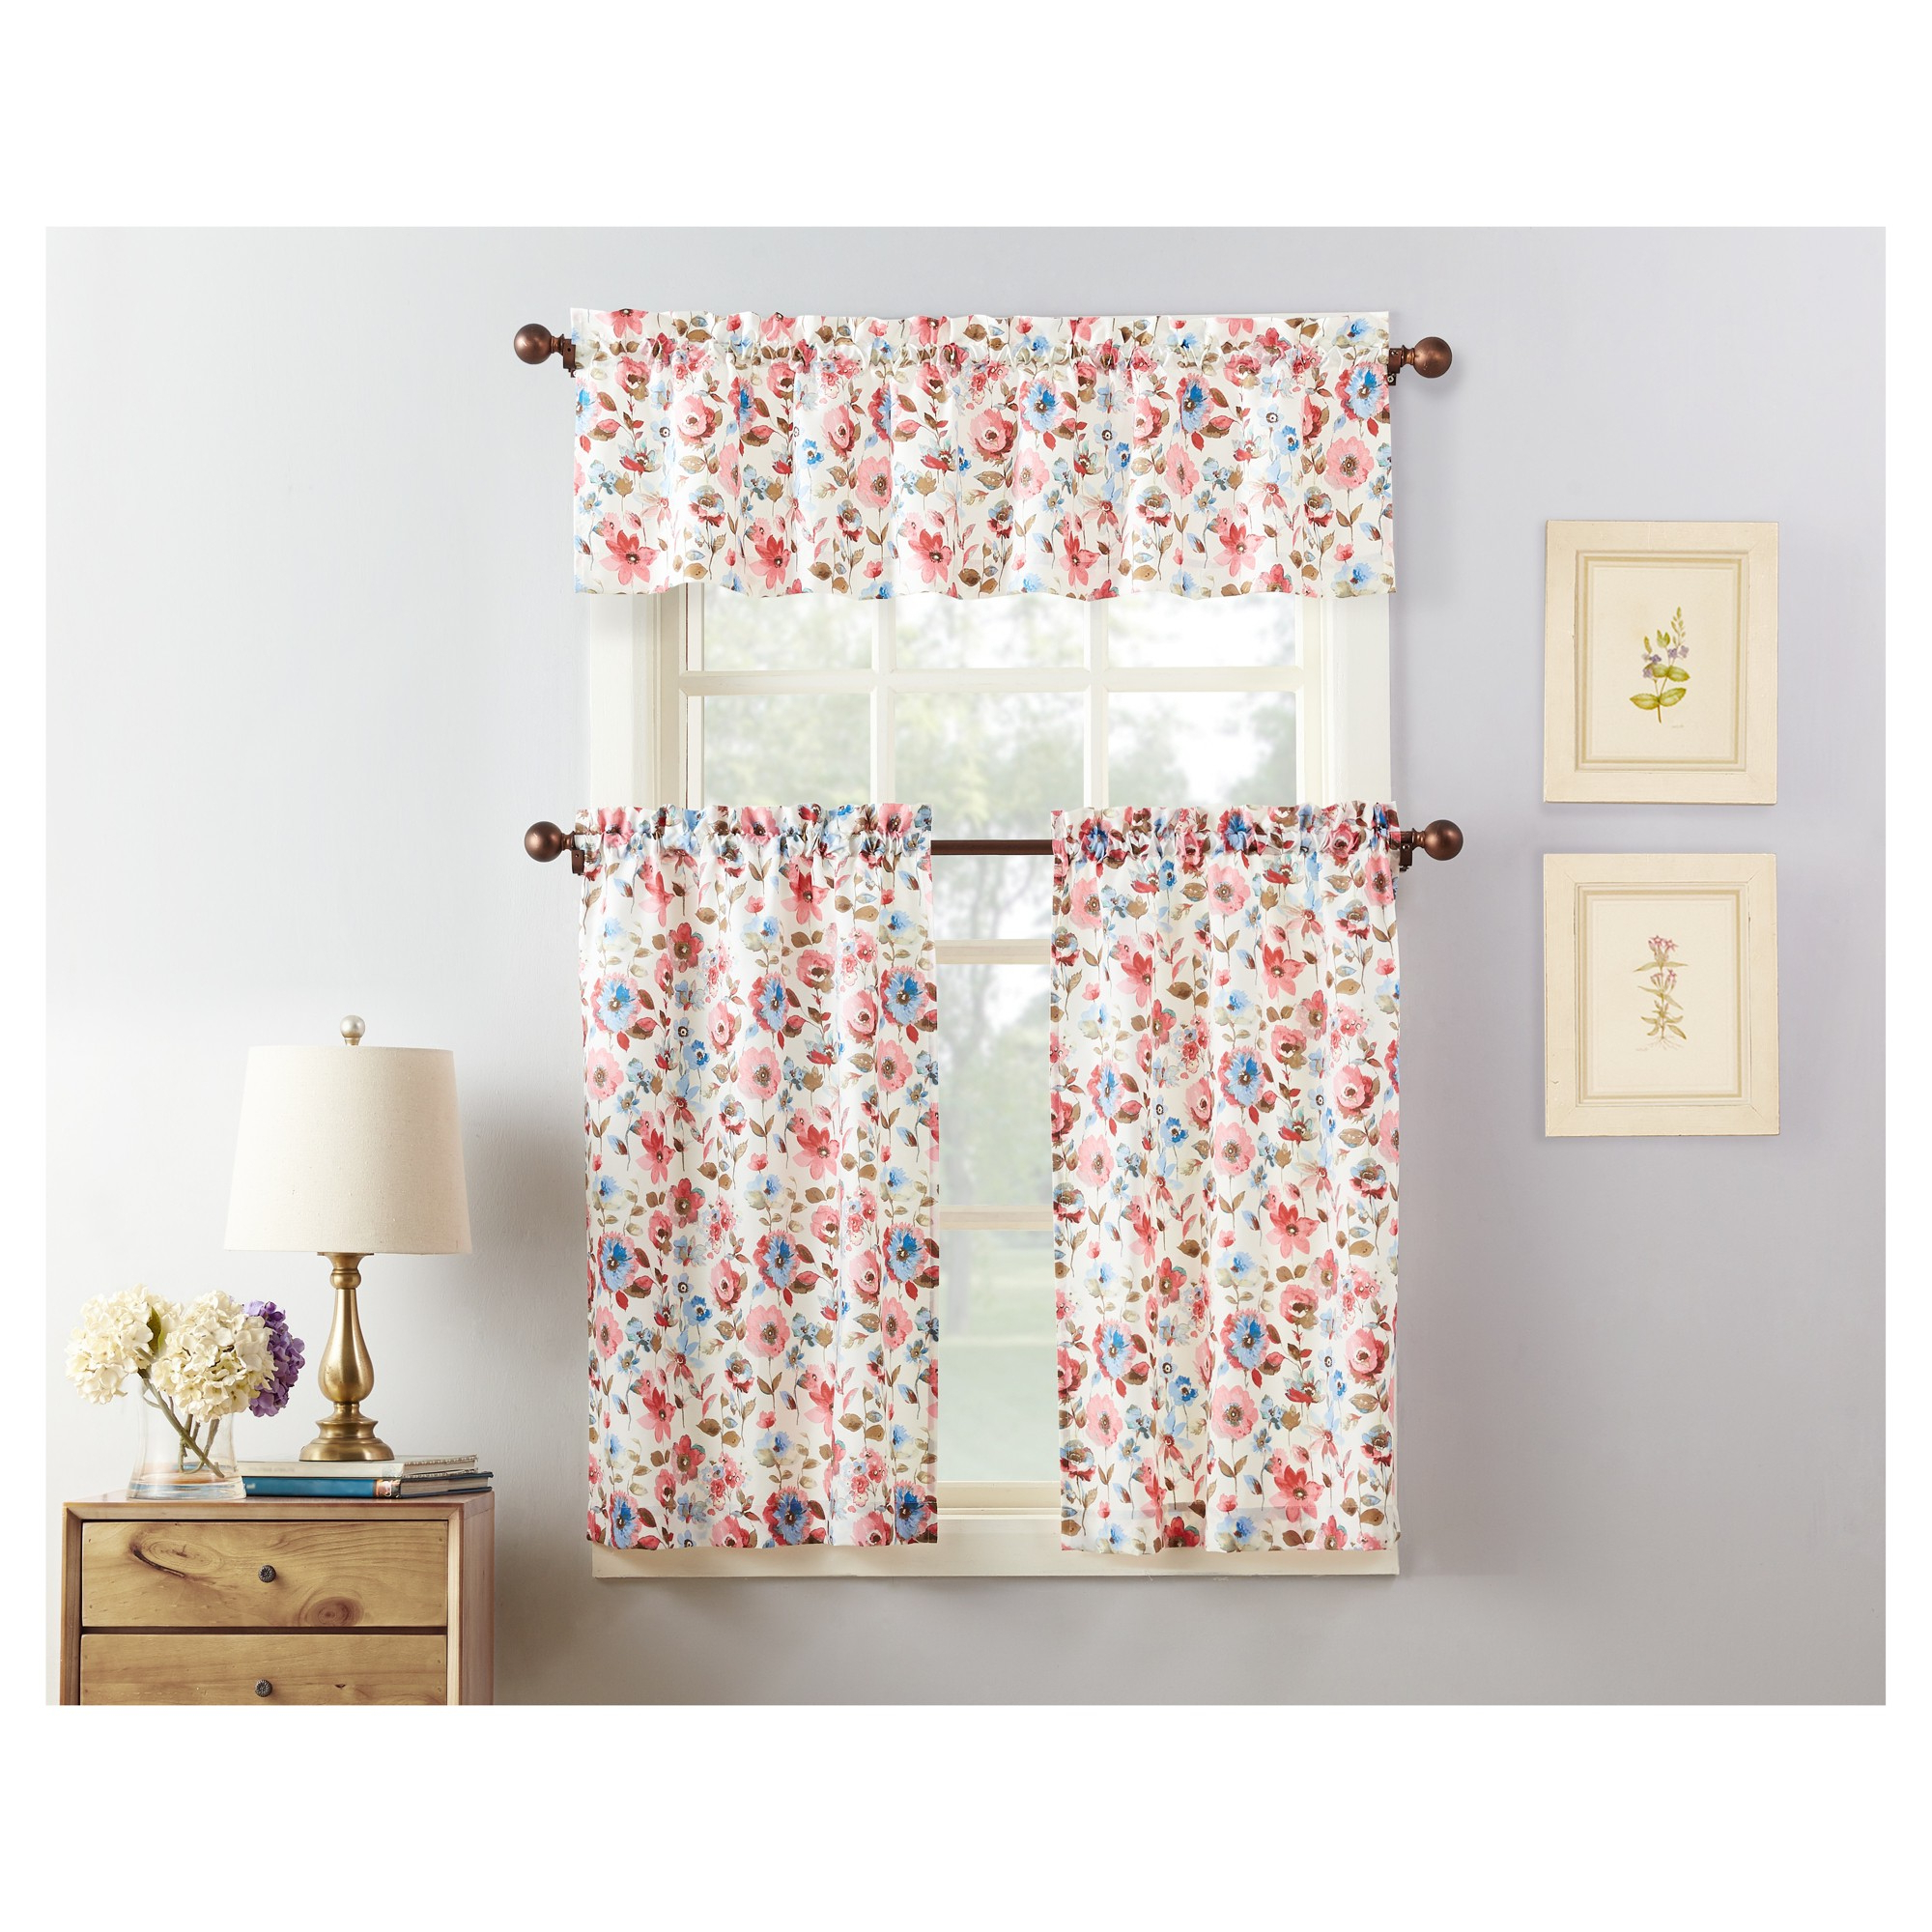 "Most Recently Released 36""x27"" Dora Floral Print Microfiber 3Pc Kitchen Curtain Within Floral Watercolor Semi Sheer Rod Pocket Kitchen Curtain Valance And Tiers Sets (Gallery 13 of 20)"